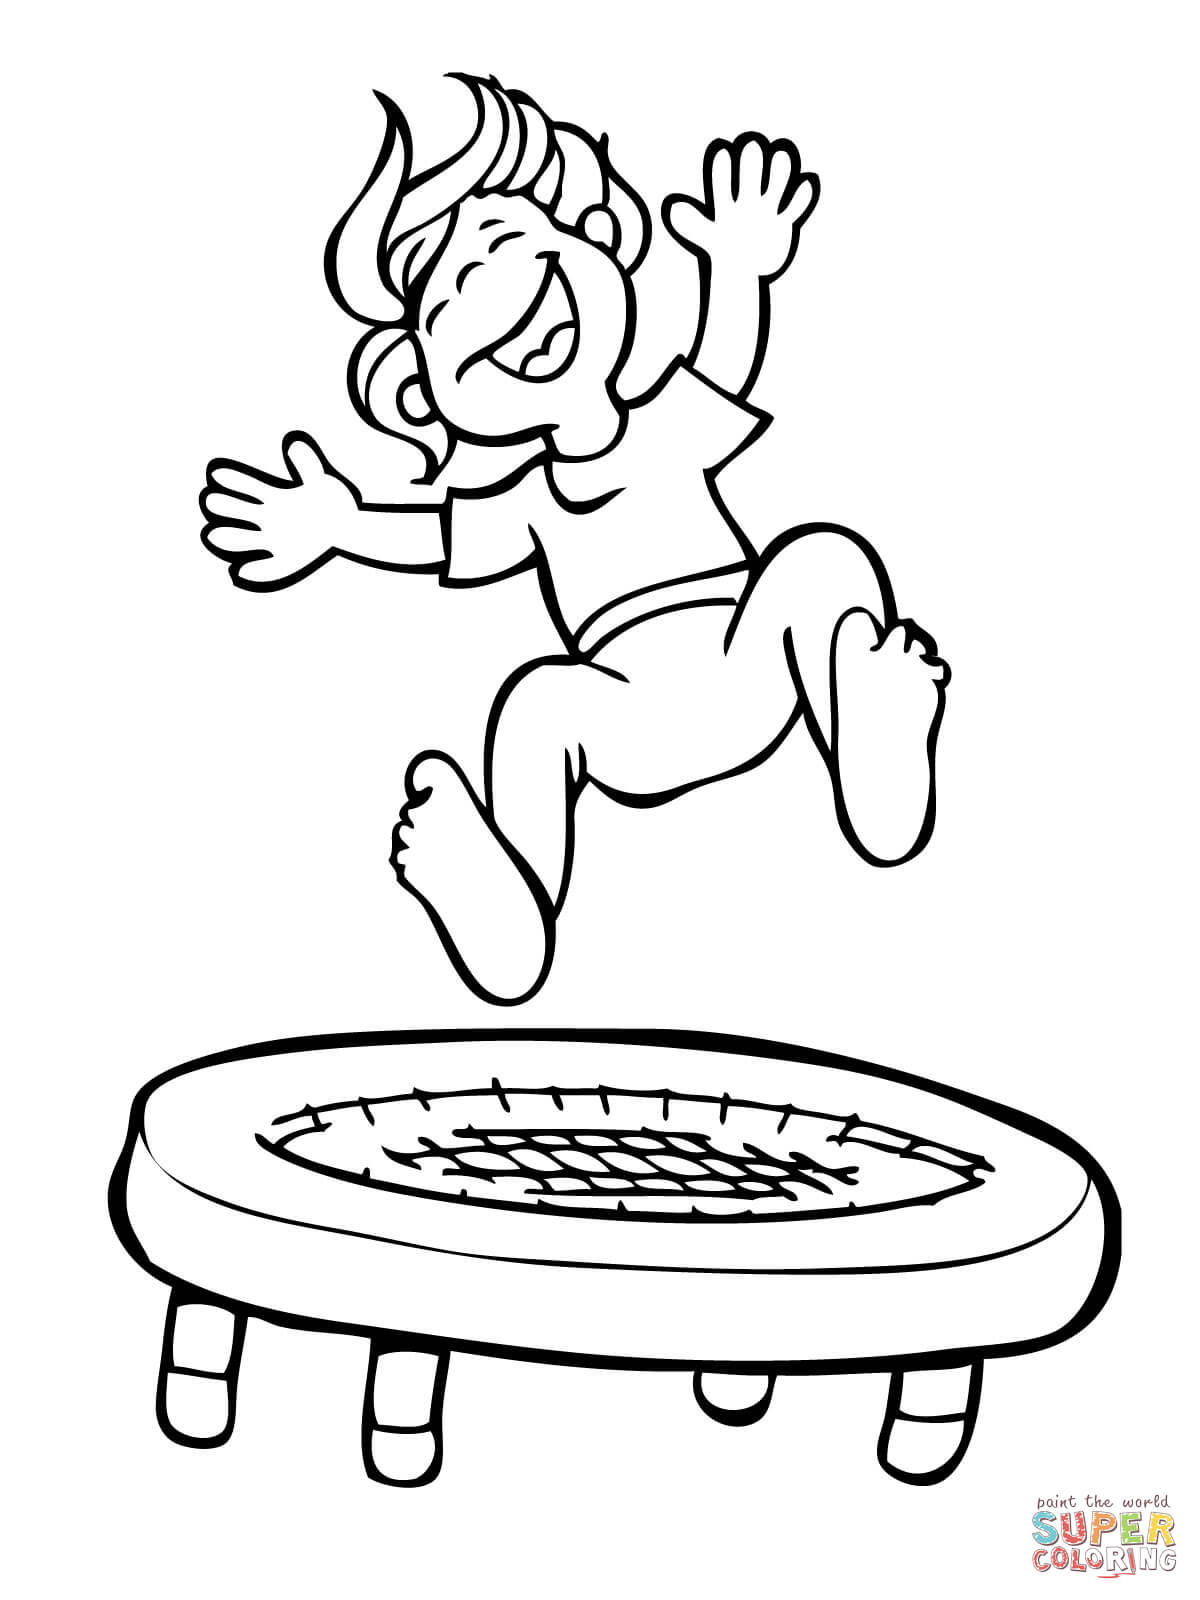 Jump drawing at getdrawings free for personal use 1200x1600 kid jumping on the troline coloring